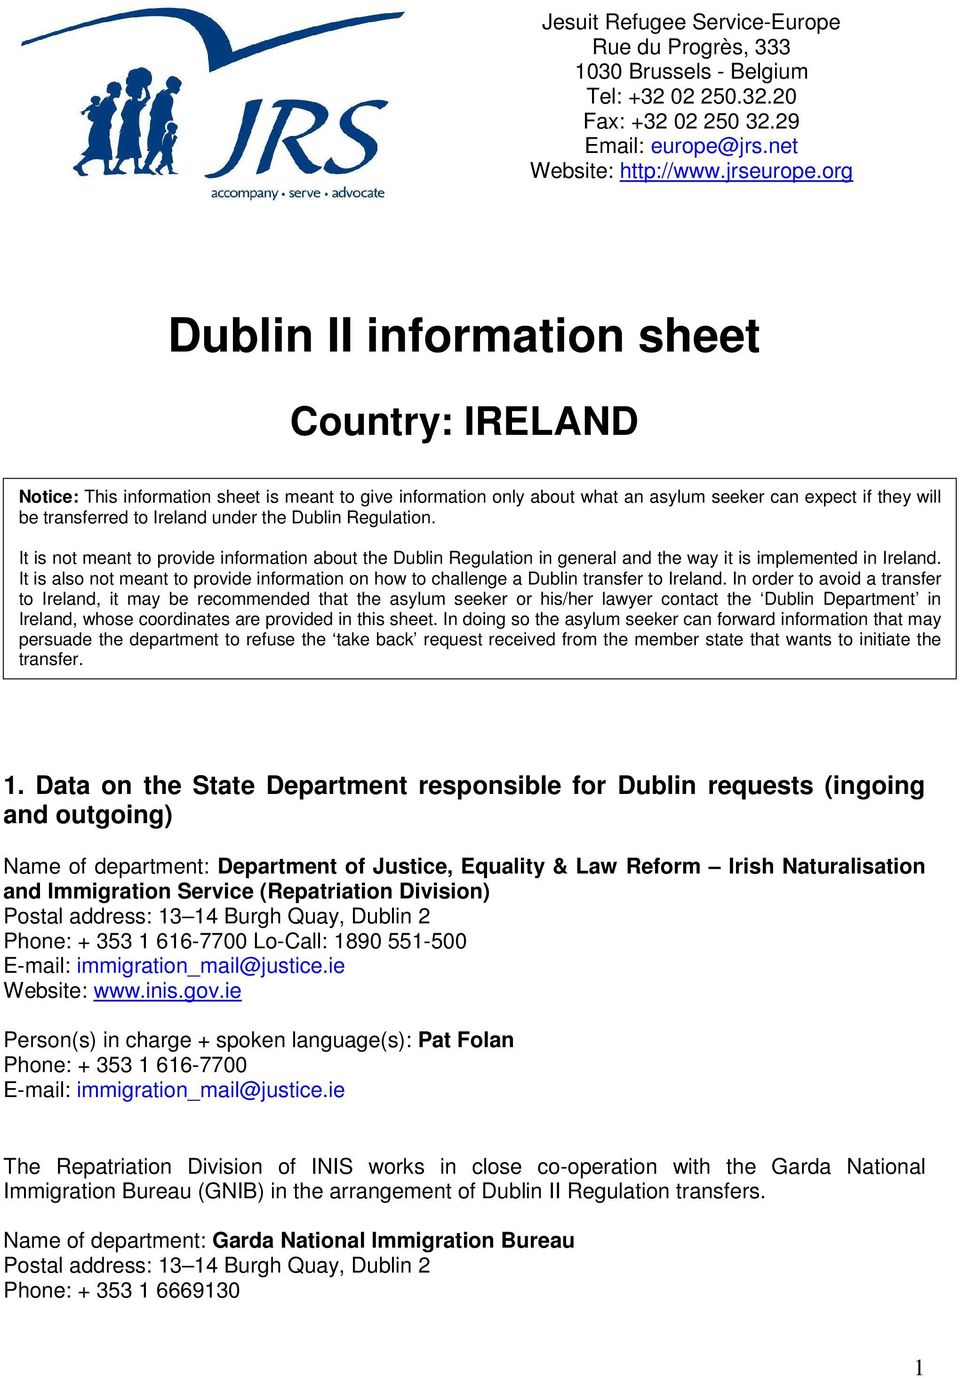 the Dublin Regulation. It is not meant to provide information about the Dublin Regulation in general and the way it is implemented in Ireland.